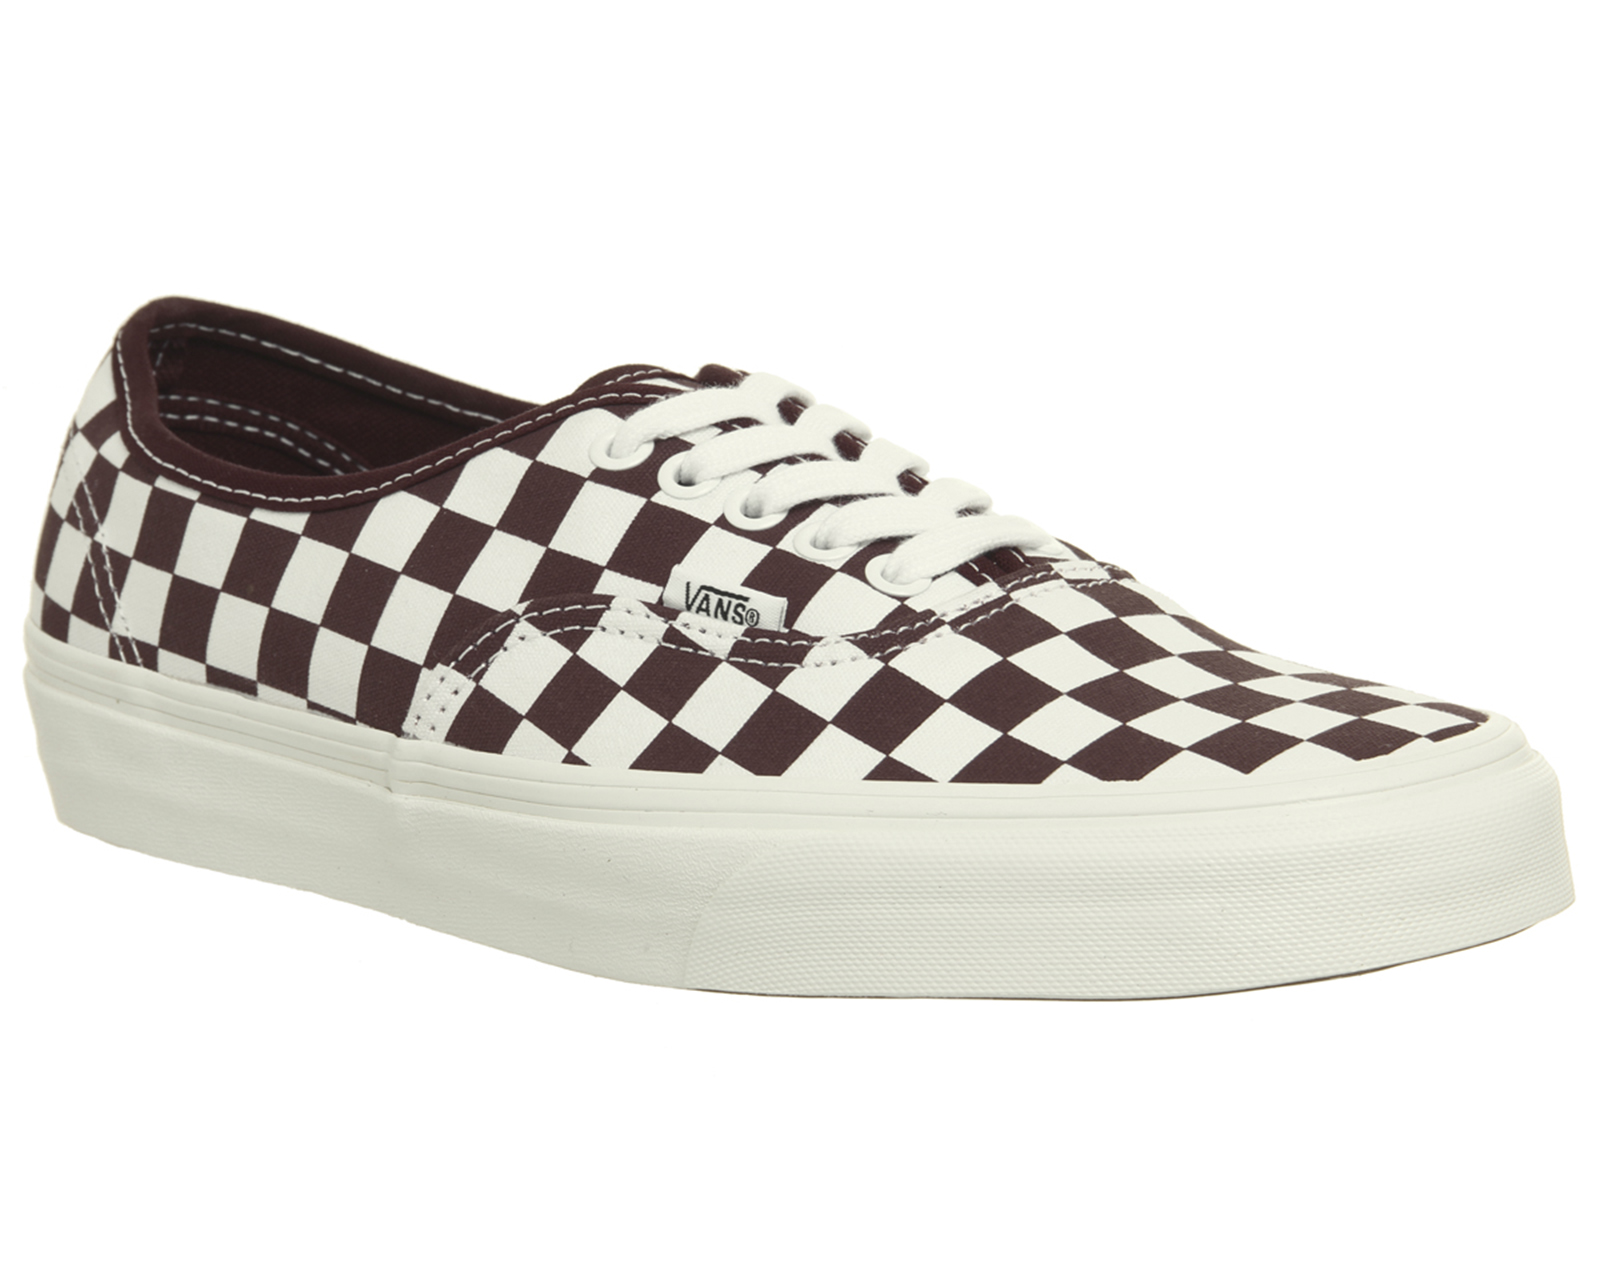 Sentinel Mens Vans Authentic Trainers Port Royale Marshmellow Checkerboard  Trainers Shoes e978f45e9